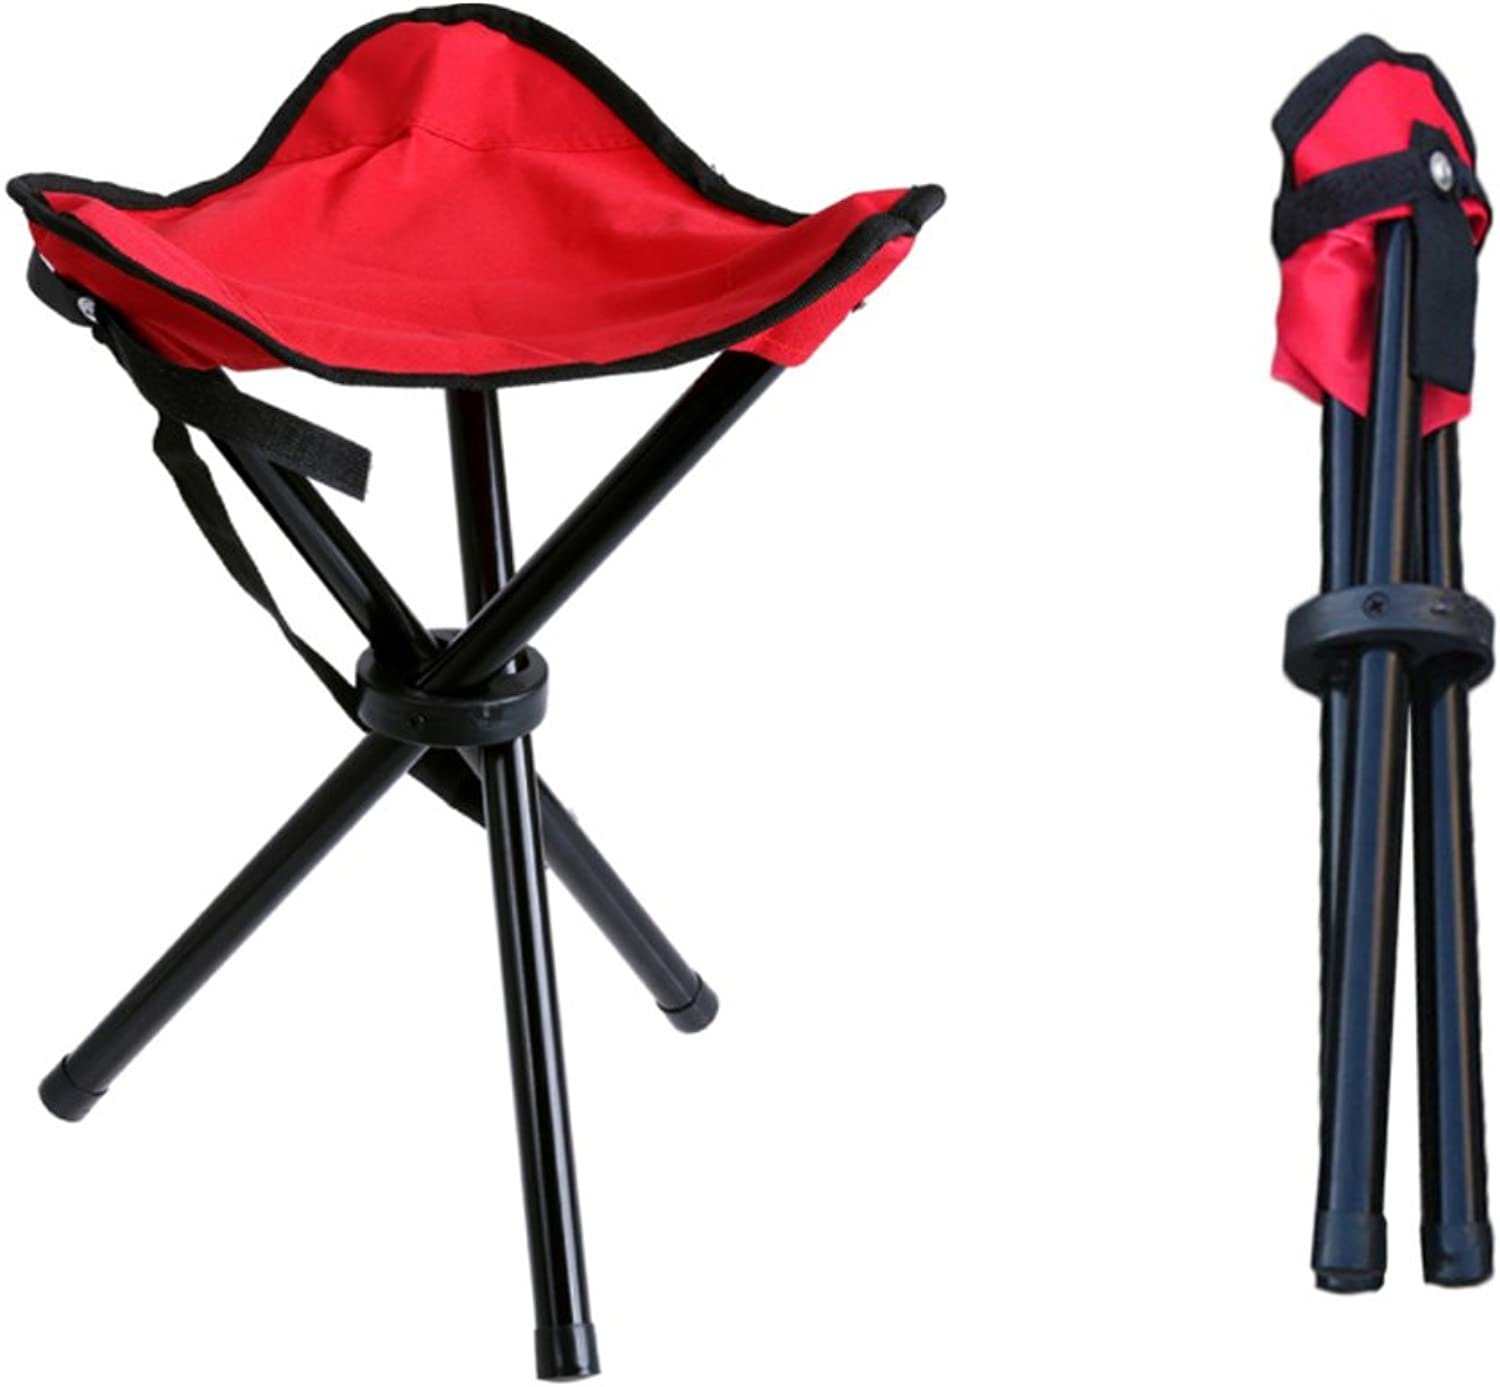 Pack of 1&3 Folding Stool Chair Foldable Fishing Chairs Traveling Camping Fishing Fold Ultralight Chairs from Zaptex